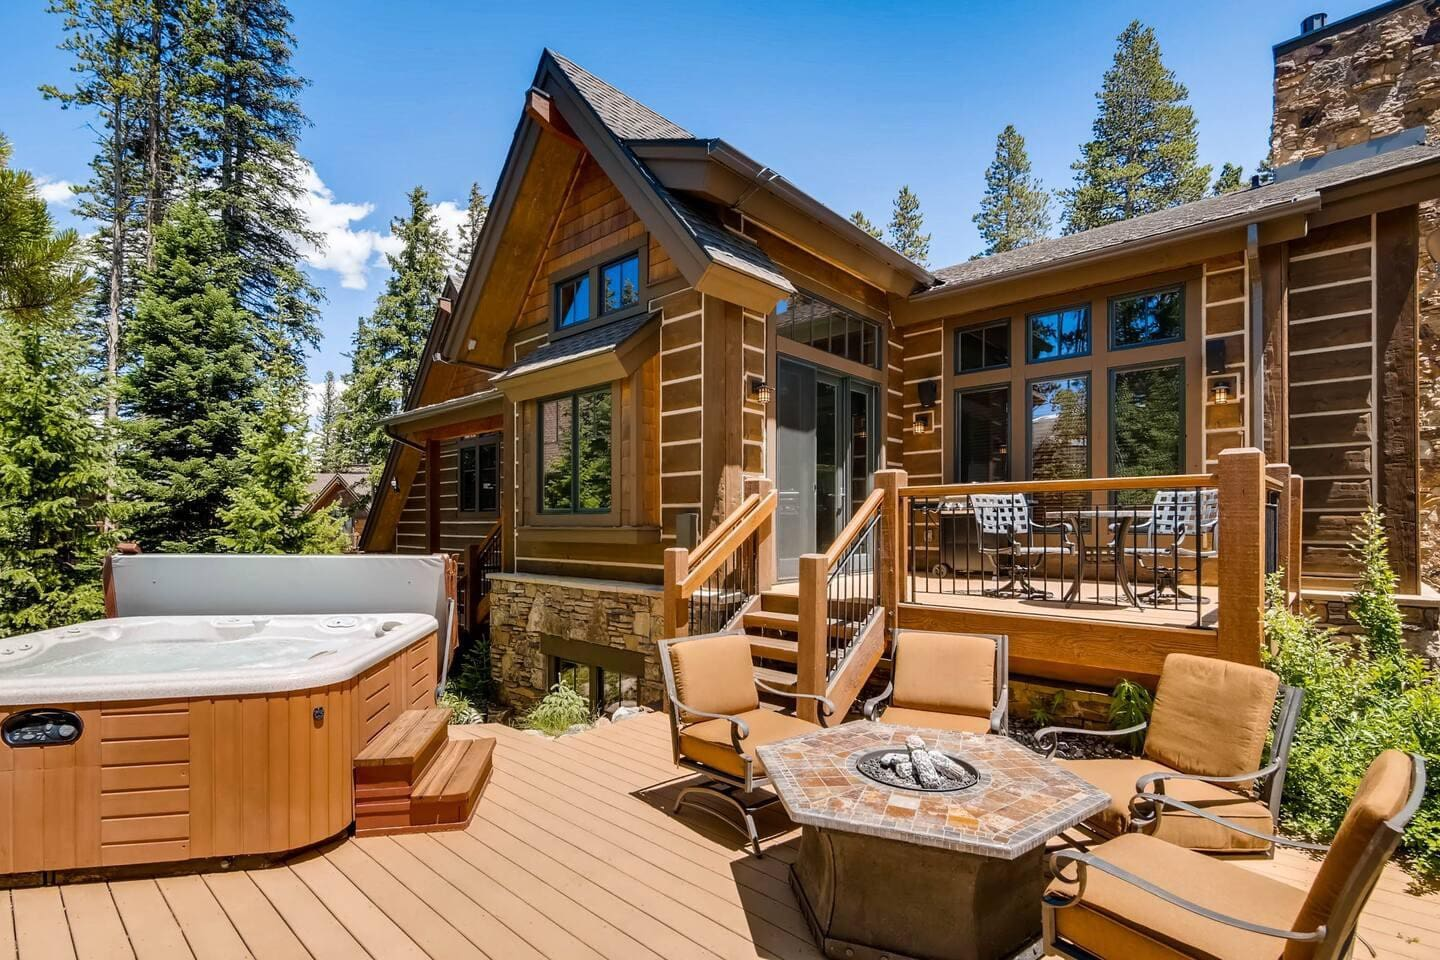 Welcoming and inviting mountain elegance outdoor area and hot tub